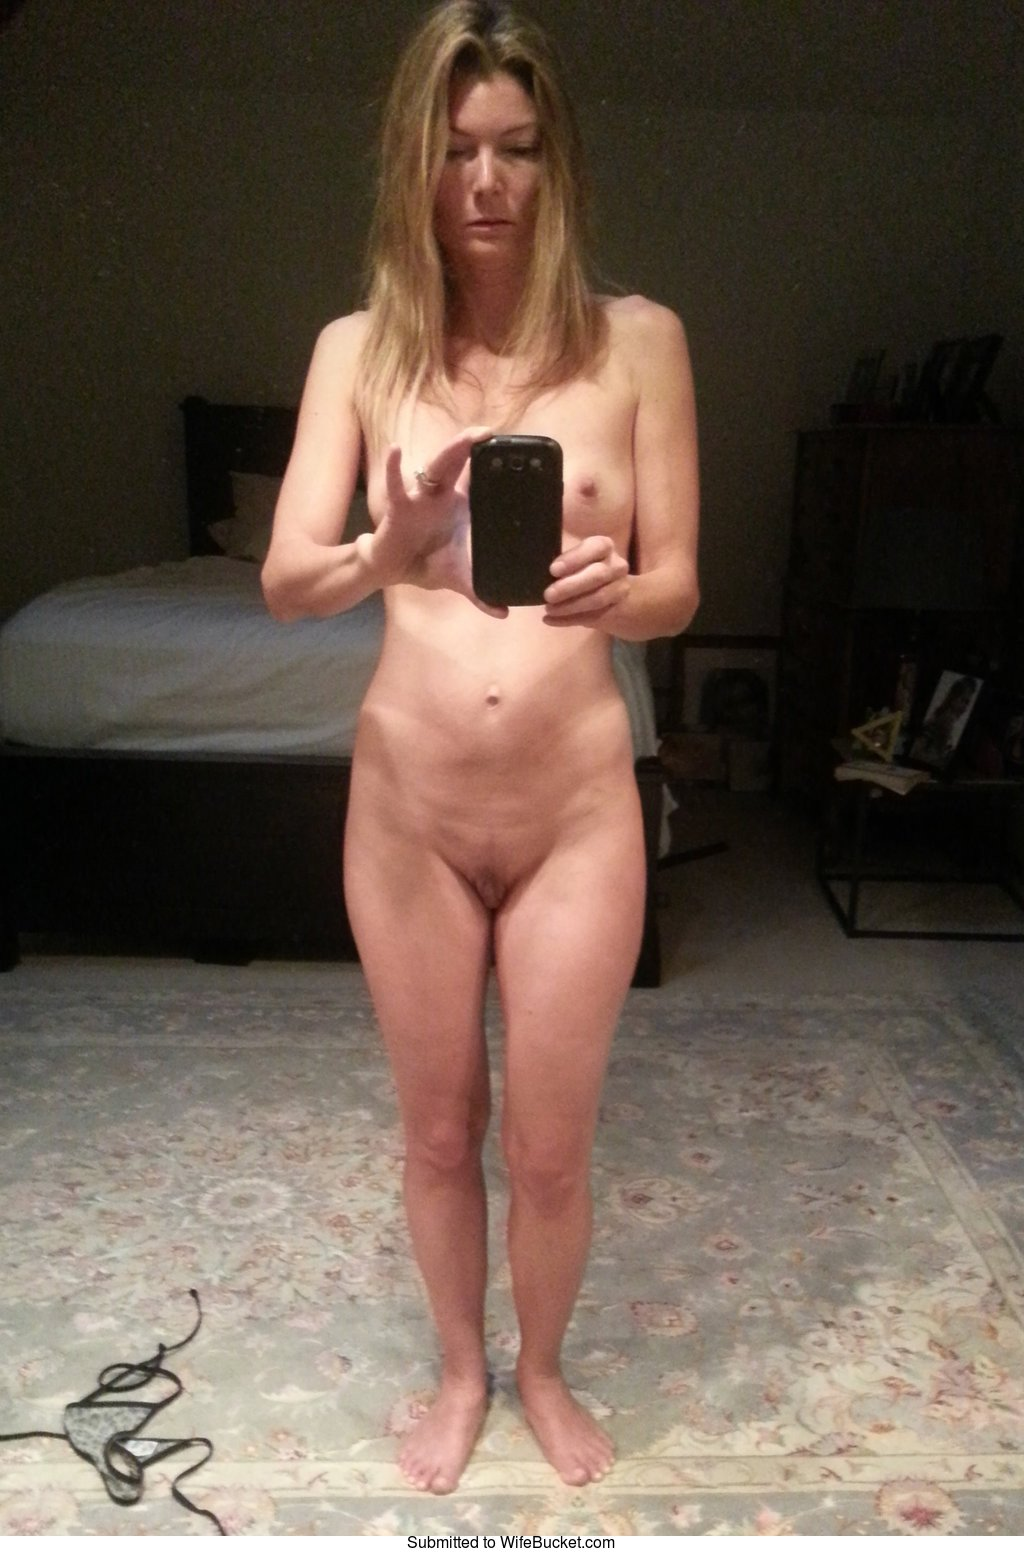 Wifebucket  More Shameless Nude Selfies From Average Wives-9656